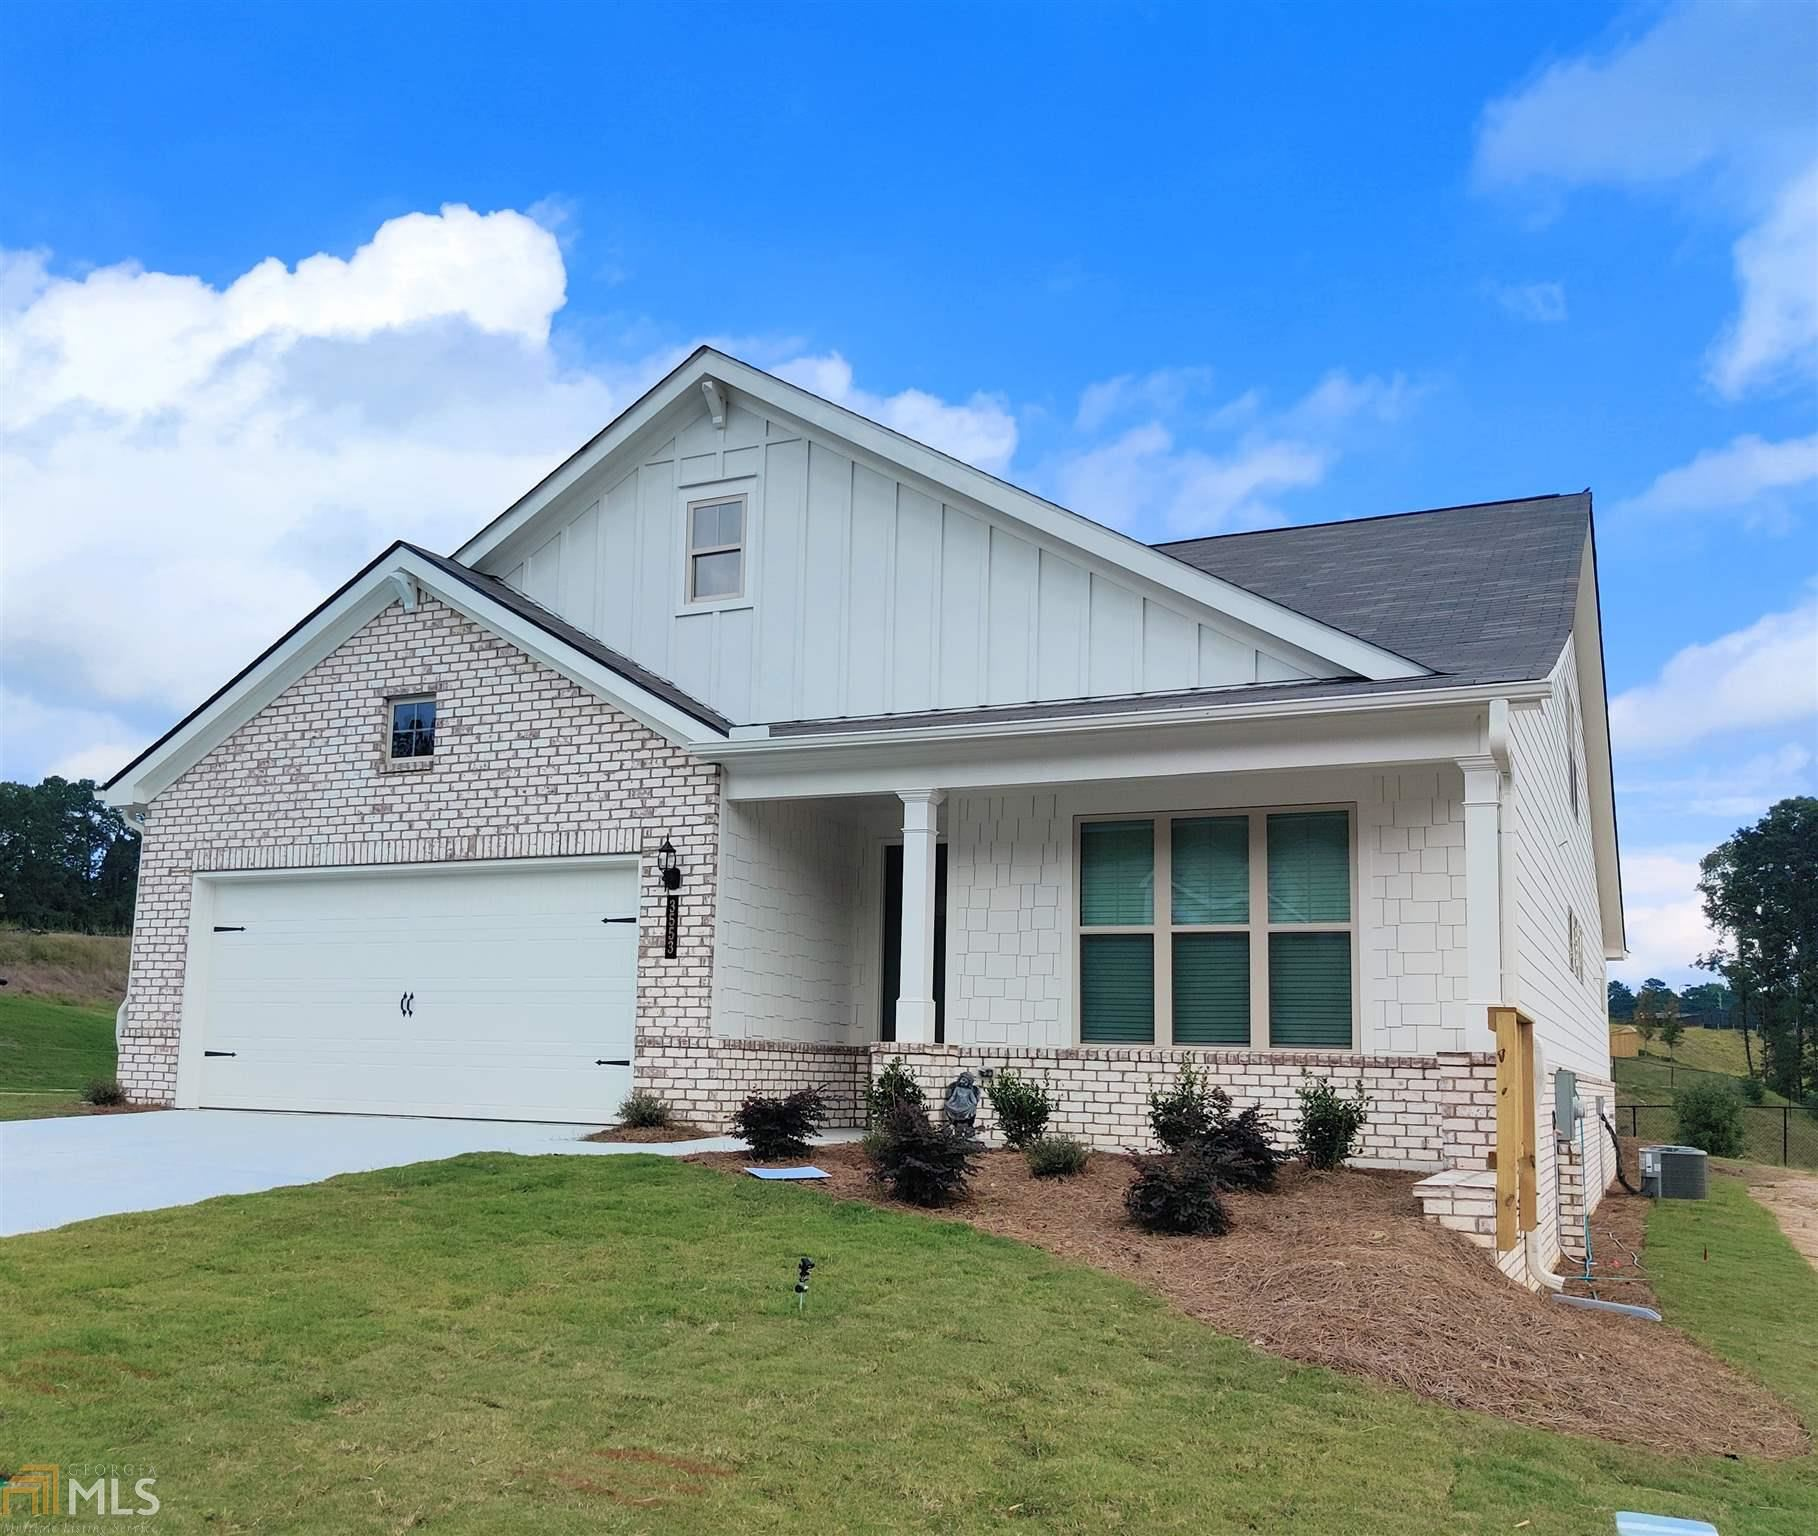 3452 High Shoals, Buford, GA 30519 - MLS#: 8897835